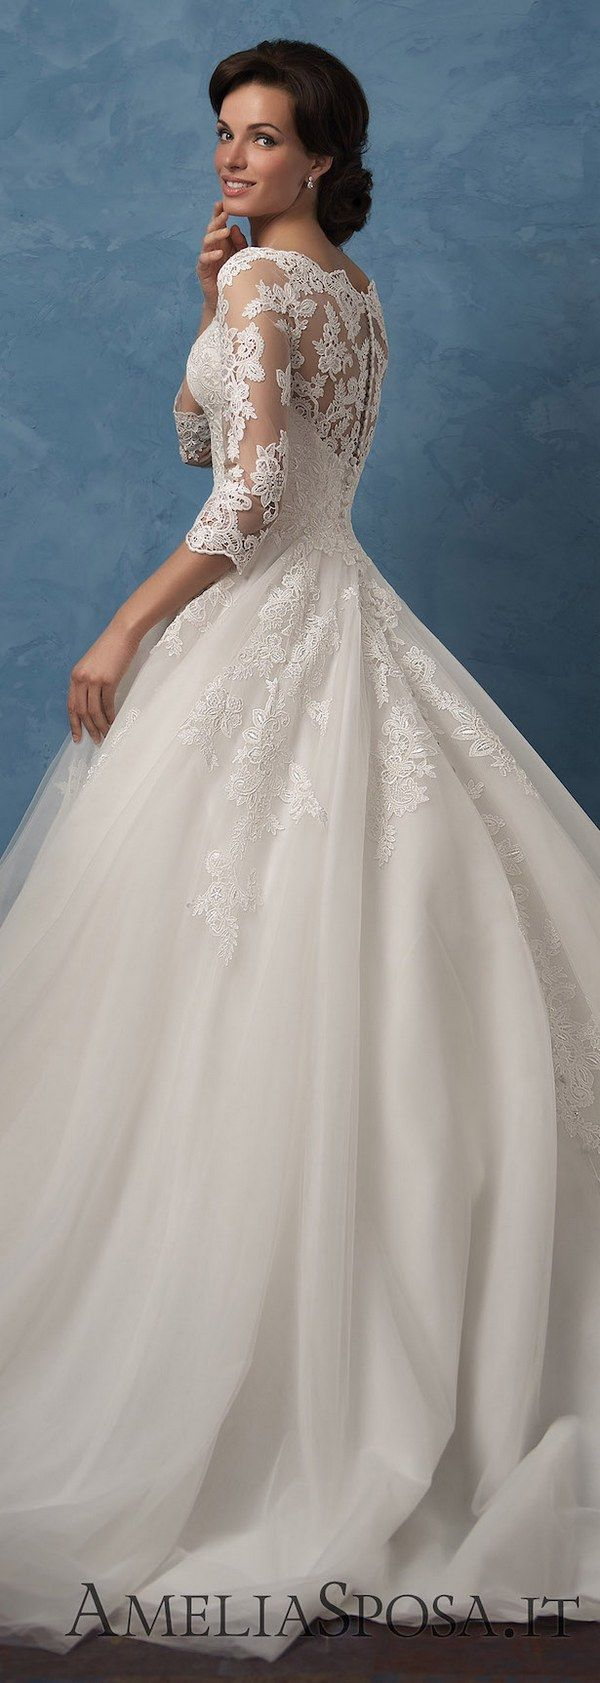 best mirese images on pinterest brides groom attire and